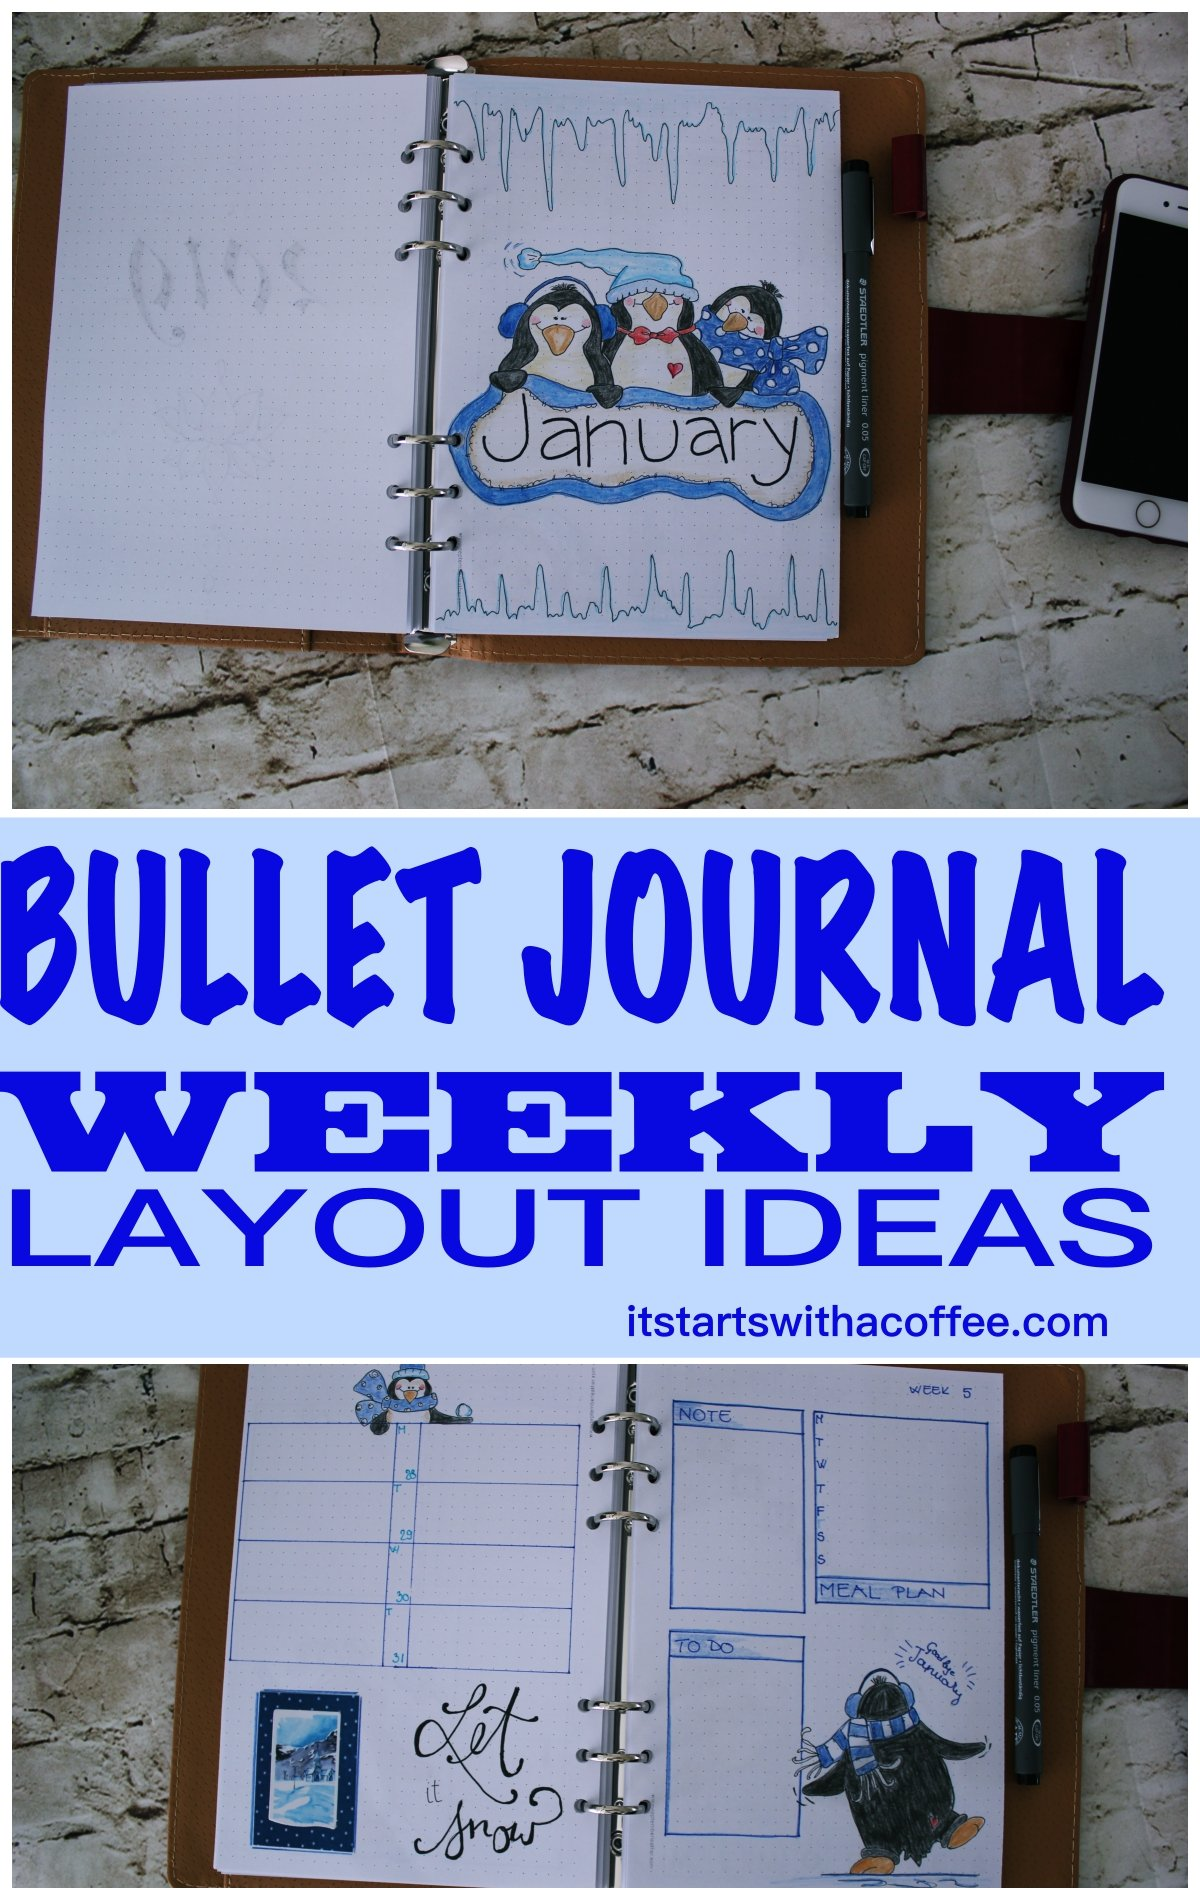 Bullet journal - January weekly planner layouts - itstartswithacoffee.com #bulletjournal #bujo #bujolove #bulletjournaling #weeklyplanner #January #bulletjournallove #bujojunkies